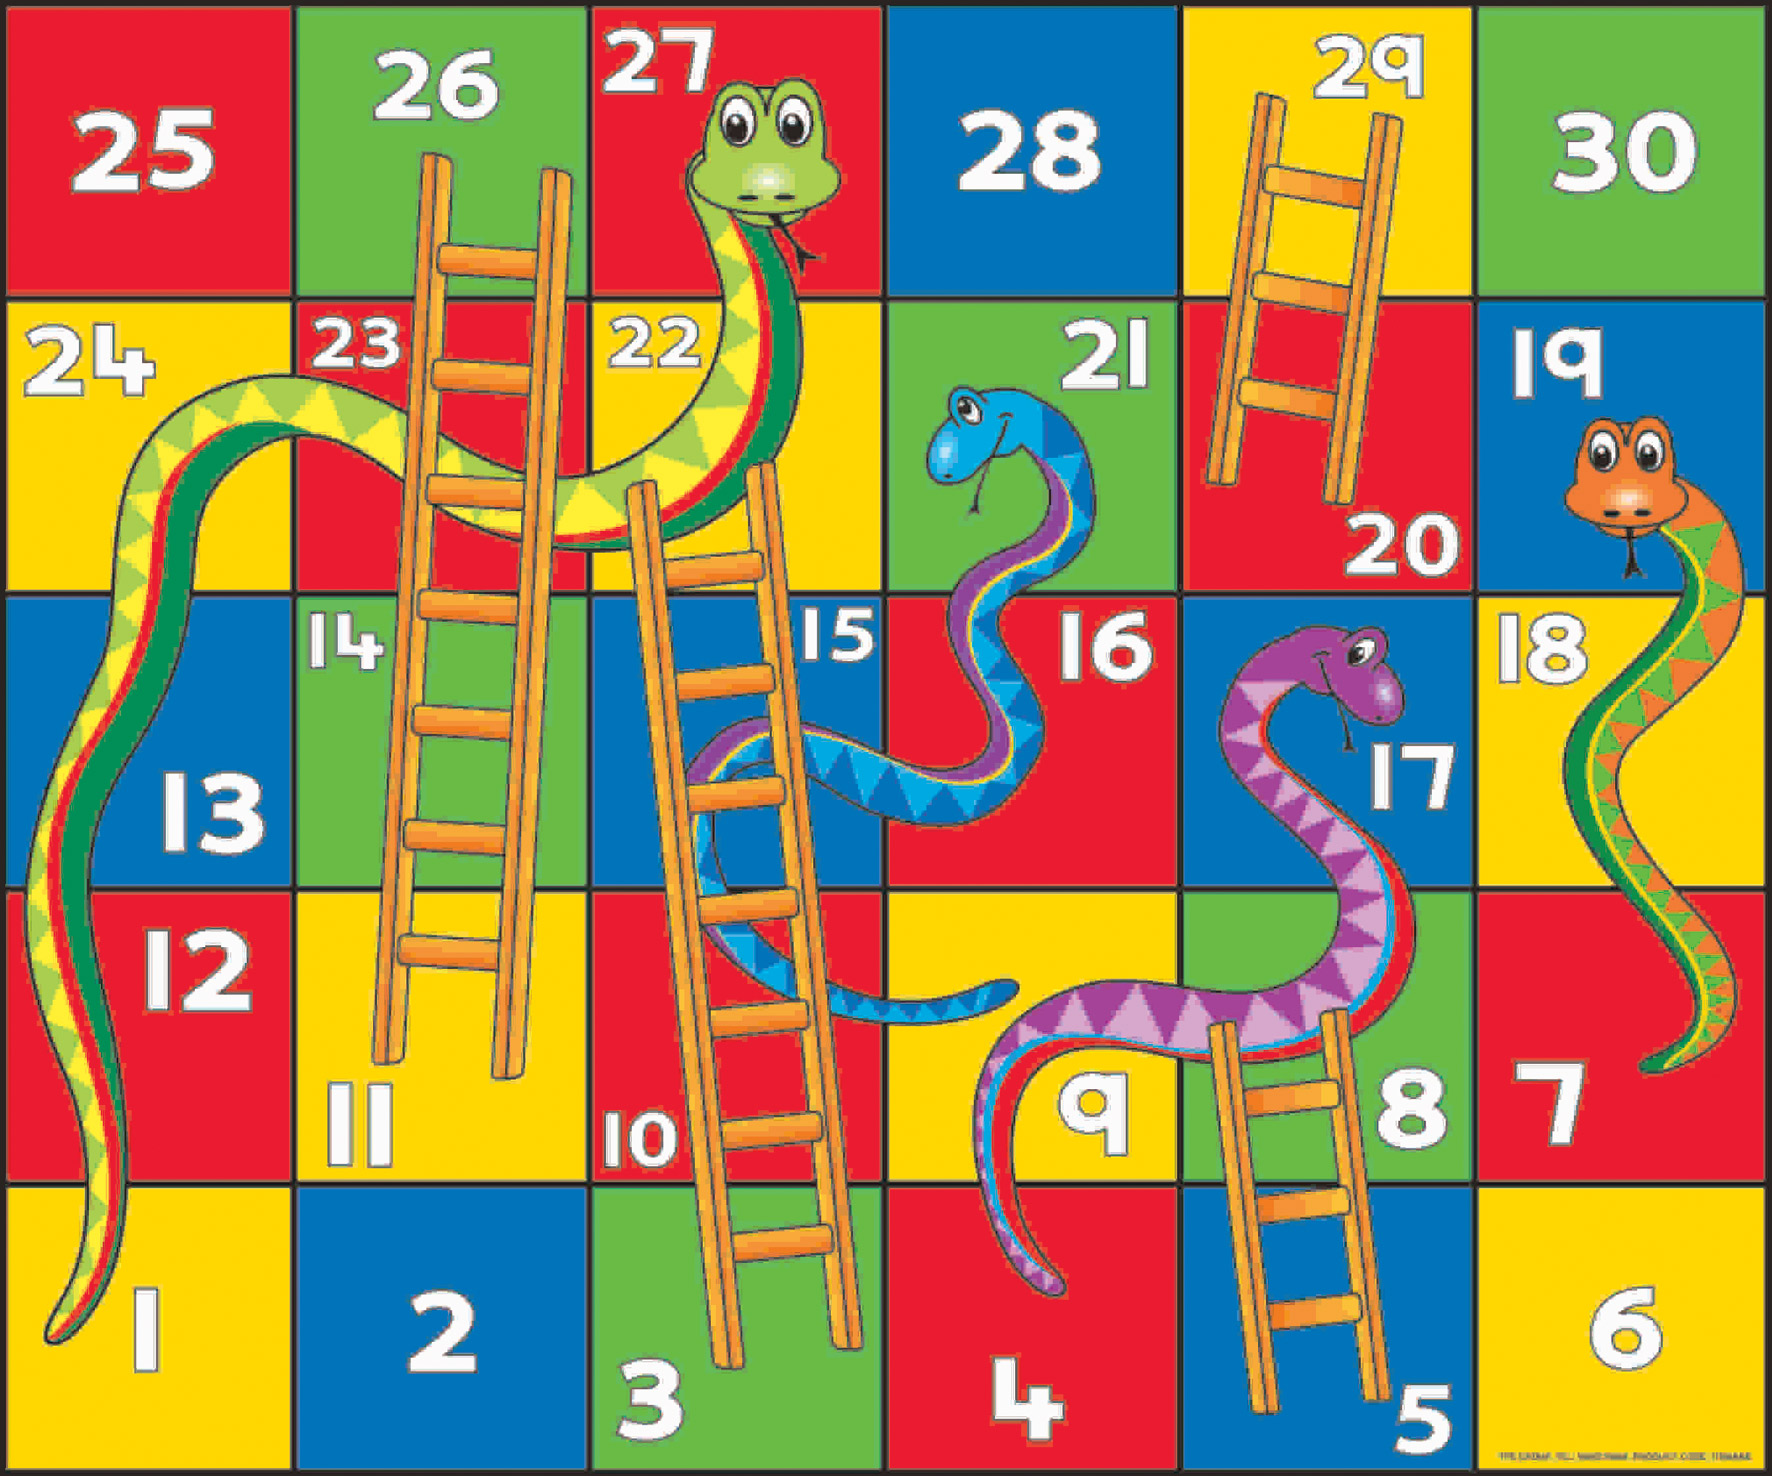 Snakes And Ladders Board Printable Snakes+ladders.jpg